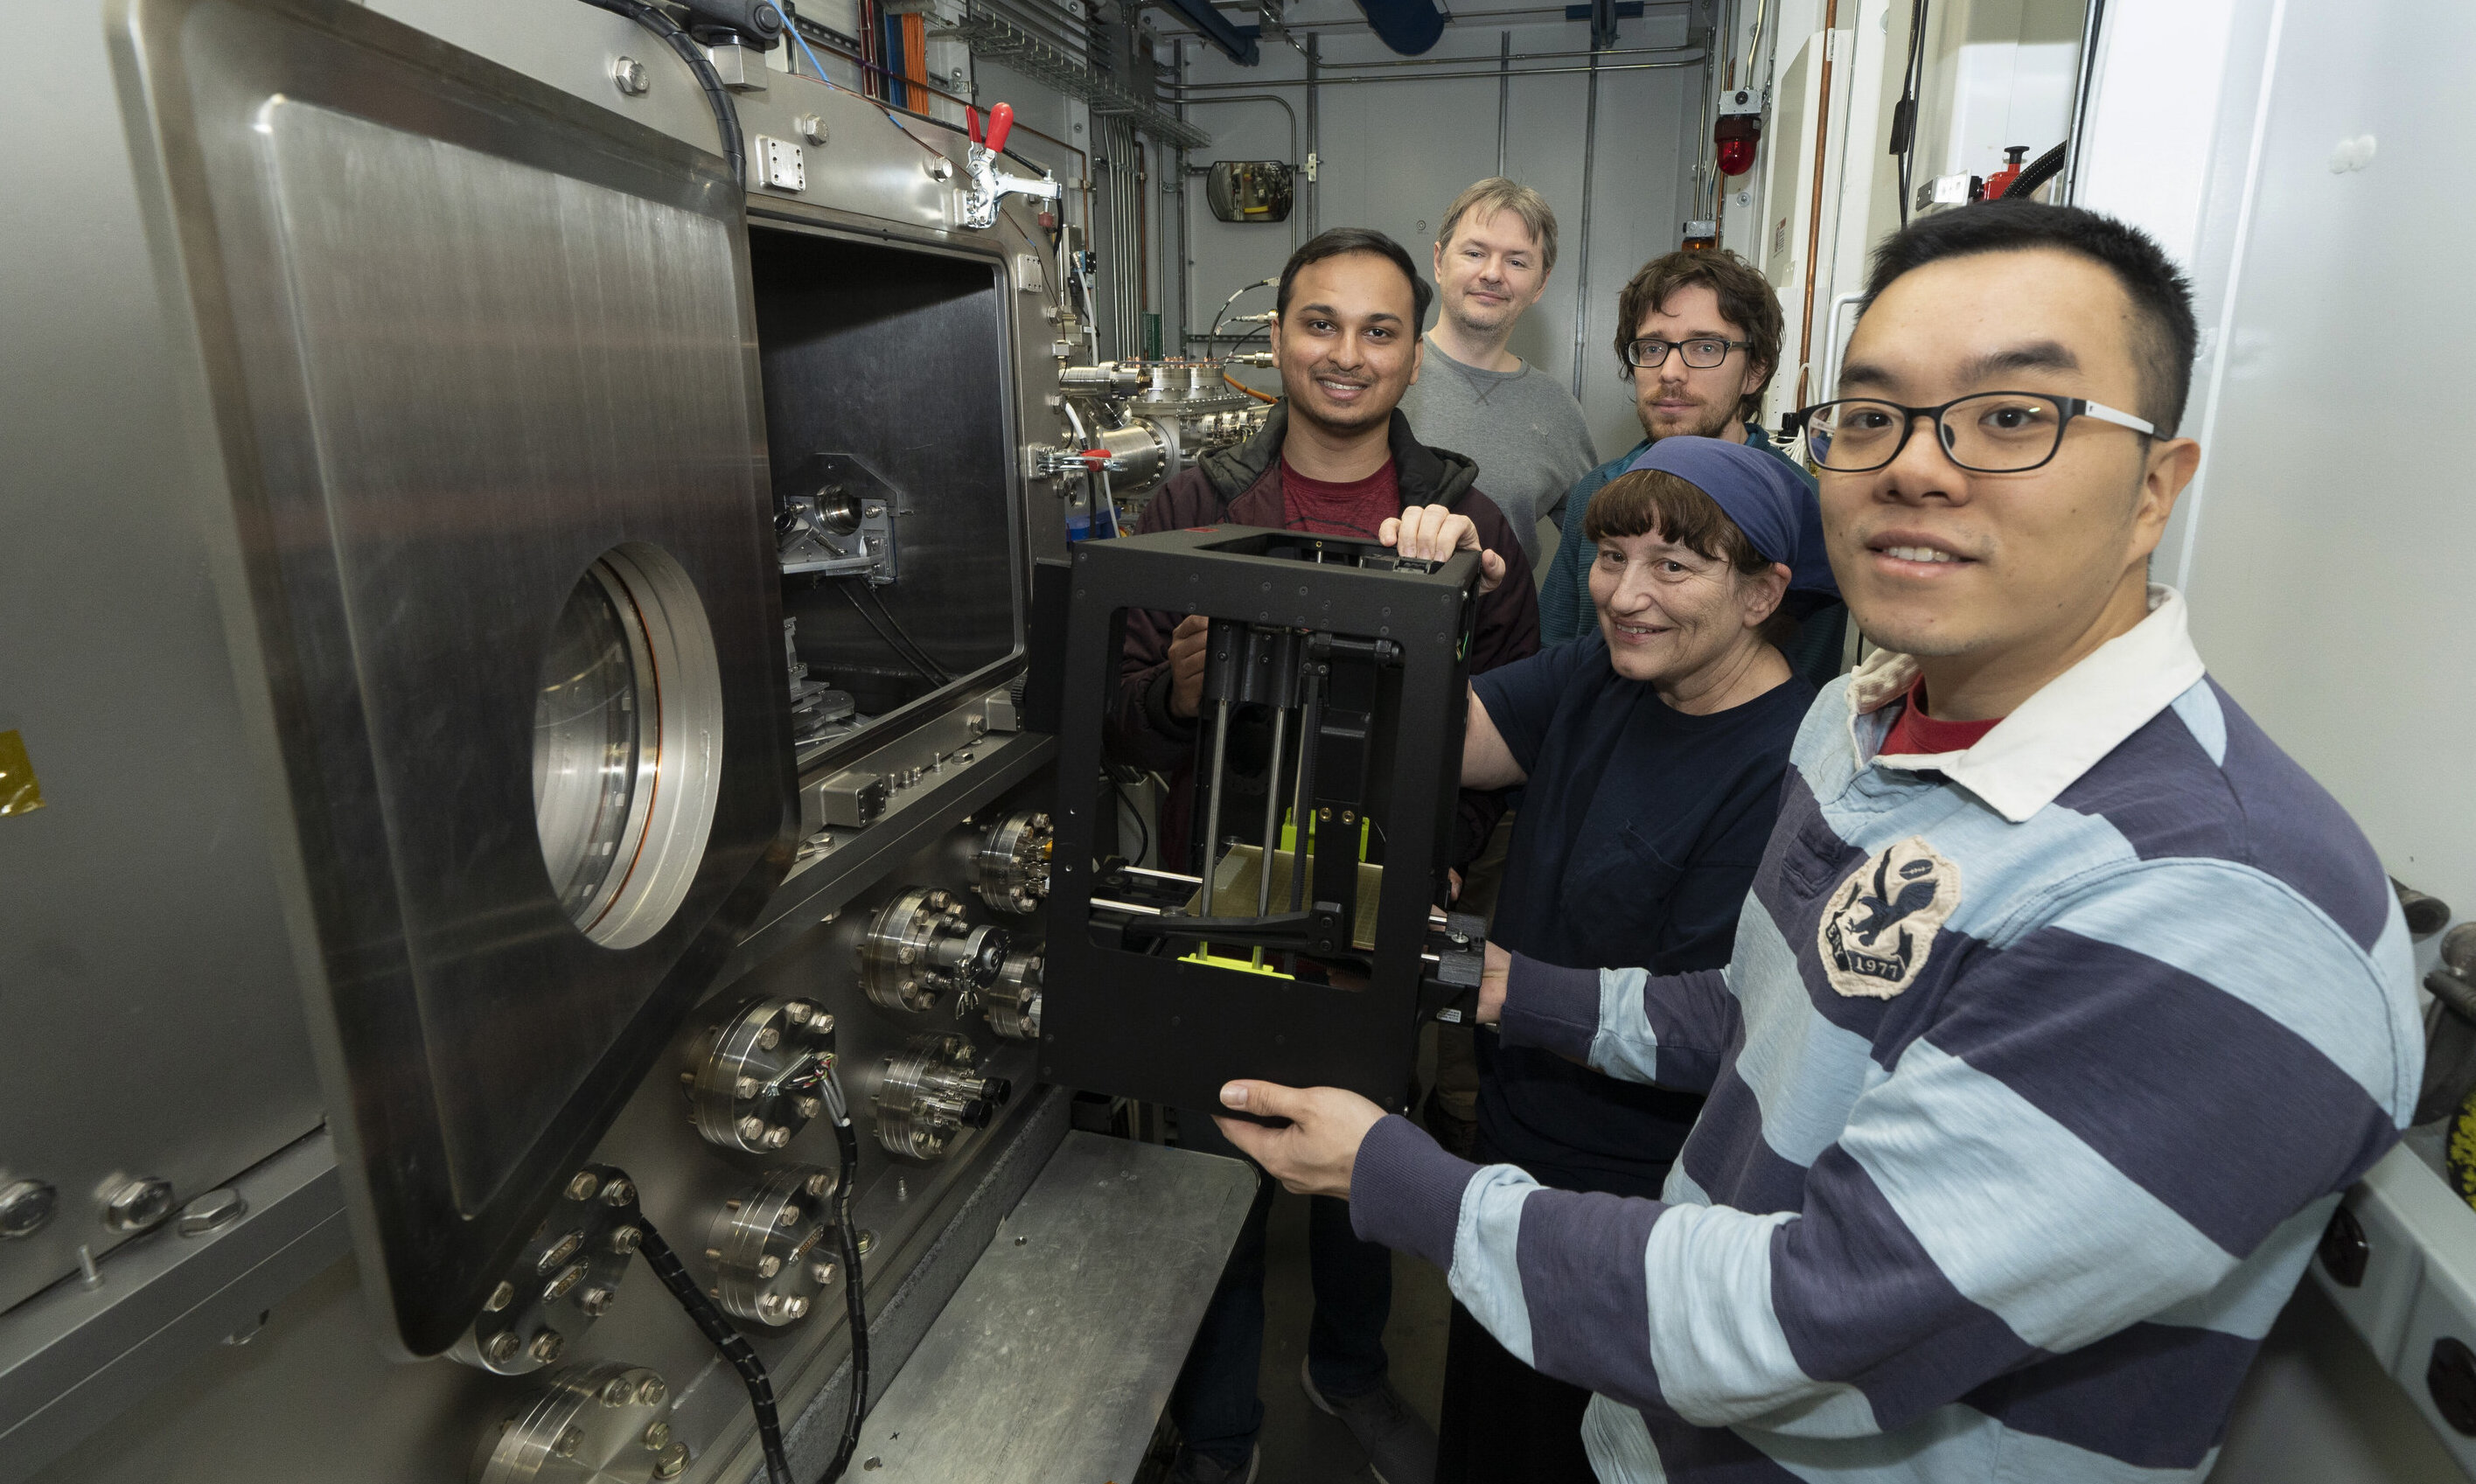 The research team placing their 3D printer into the chamber of the Soft Matter Interfaces (SMI) beamline at Brookhaven Lab's NSLS-II. Photo via BNL.